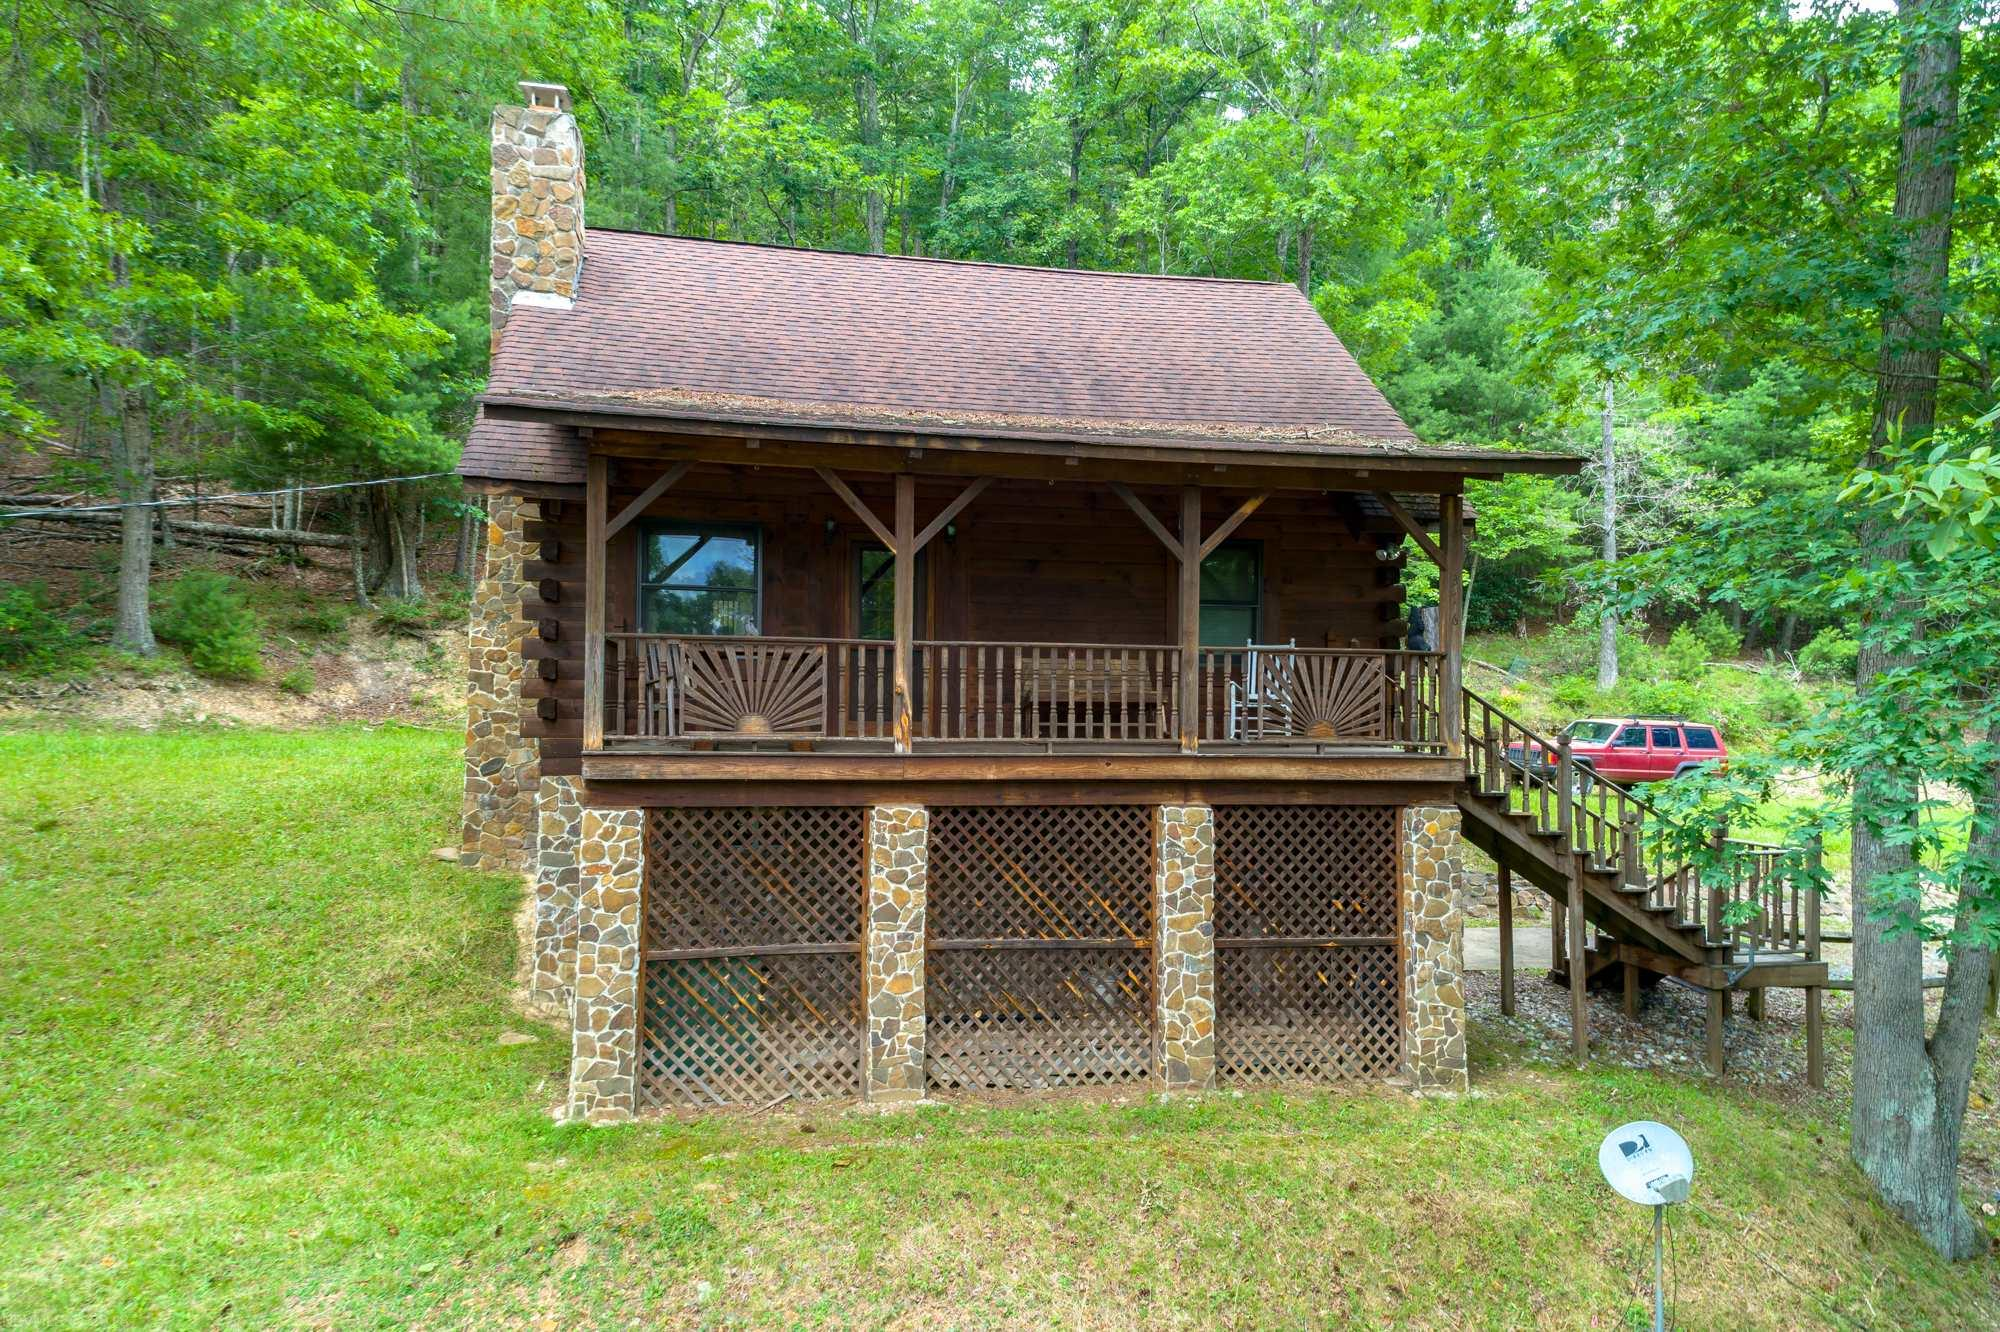 2 BR 2 BA cabin on just over 66 acres in Bland, VA. This property is absolutely perfect for the outdoor enthusiast that loves to ride four wheelers, hunt, enjoy nature and simply be away from everyone, and though it could be a full time residence, it is ideal for a recreational getaway for you and your family to enjoy in the mountains of Southwest VA. Not only does it border the Jefferson National Forest, but has creek frontage as well and there are multiple hunting plots with blinds and trails to ride too. Cabin is quite nice and has a full kitchen, large living area, a very nice fireplace, heat pump, and more. Garage in basement. Located only minutes from I-77, not far from the WV/VA state border.